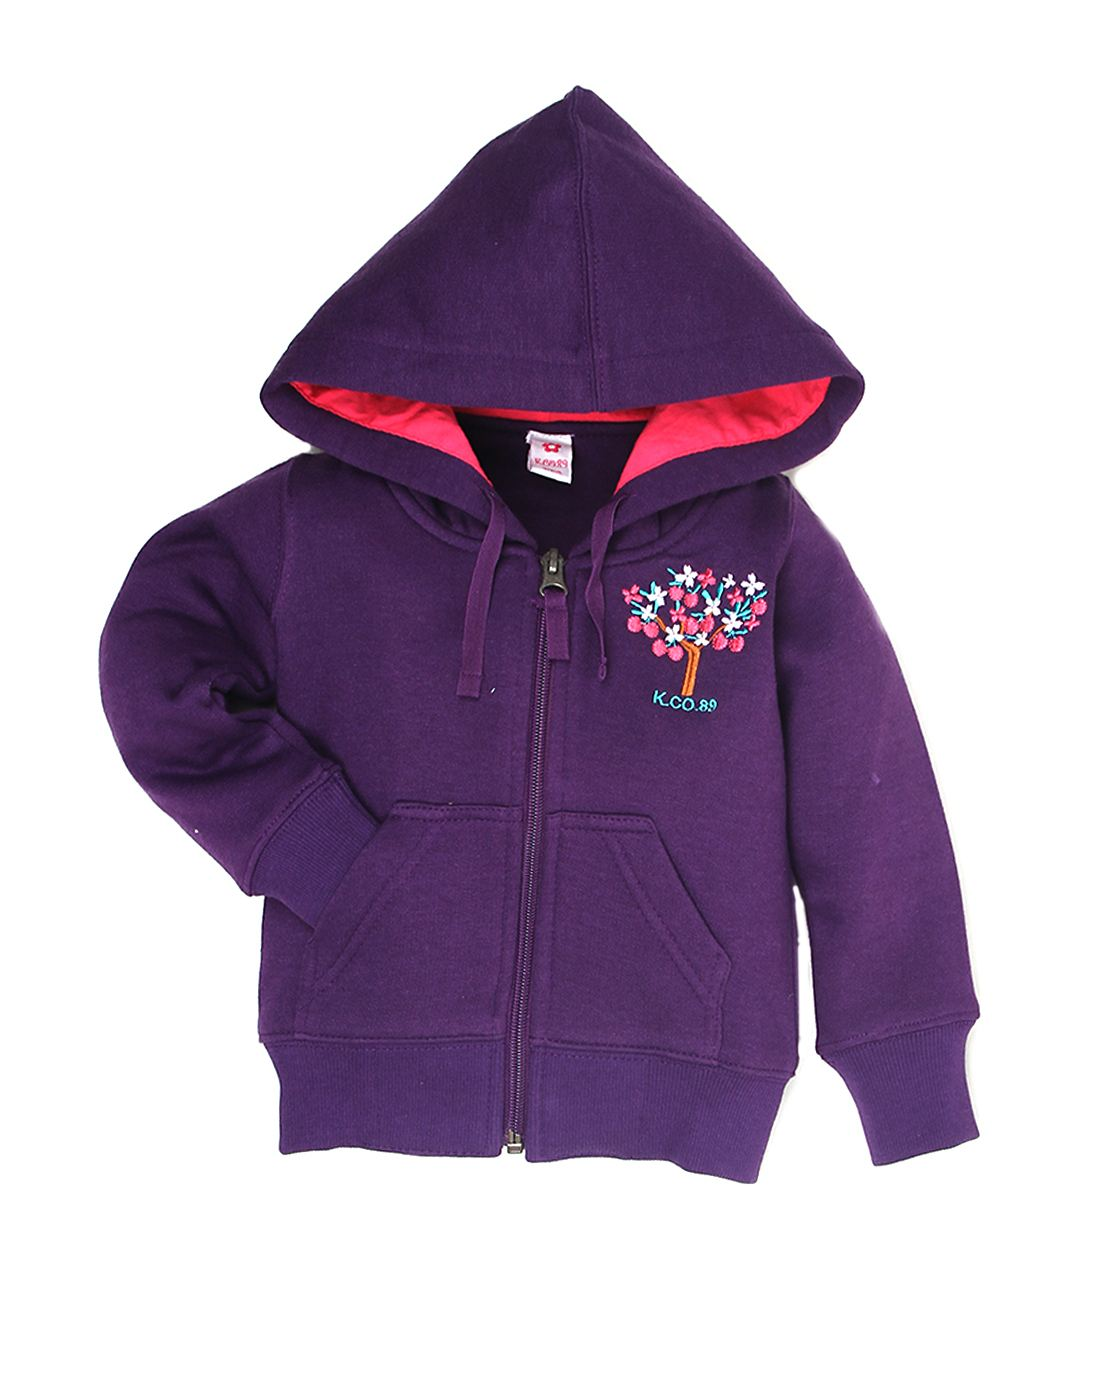 K.C.O 89 Girls Casual Solid Full Sleeve Sweat Shirt